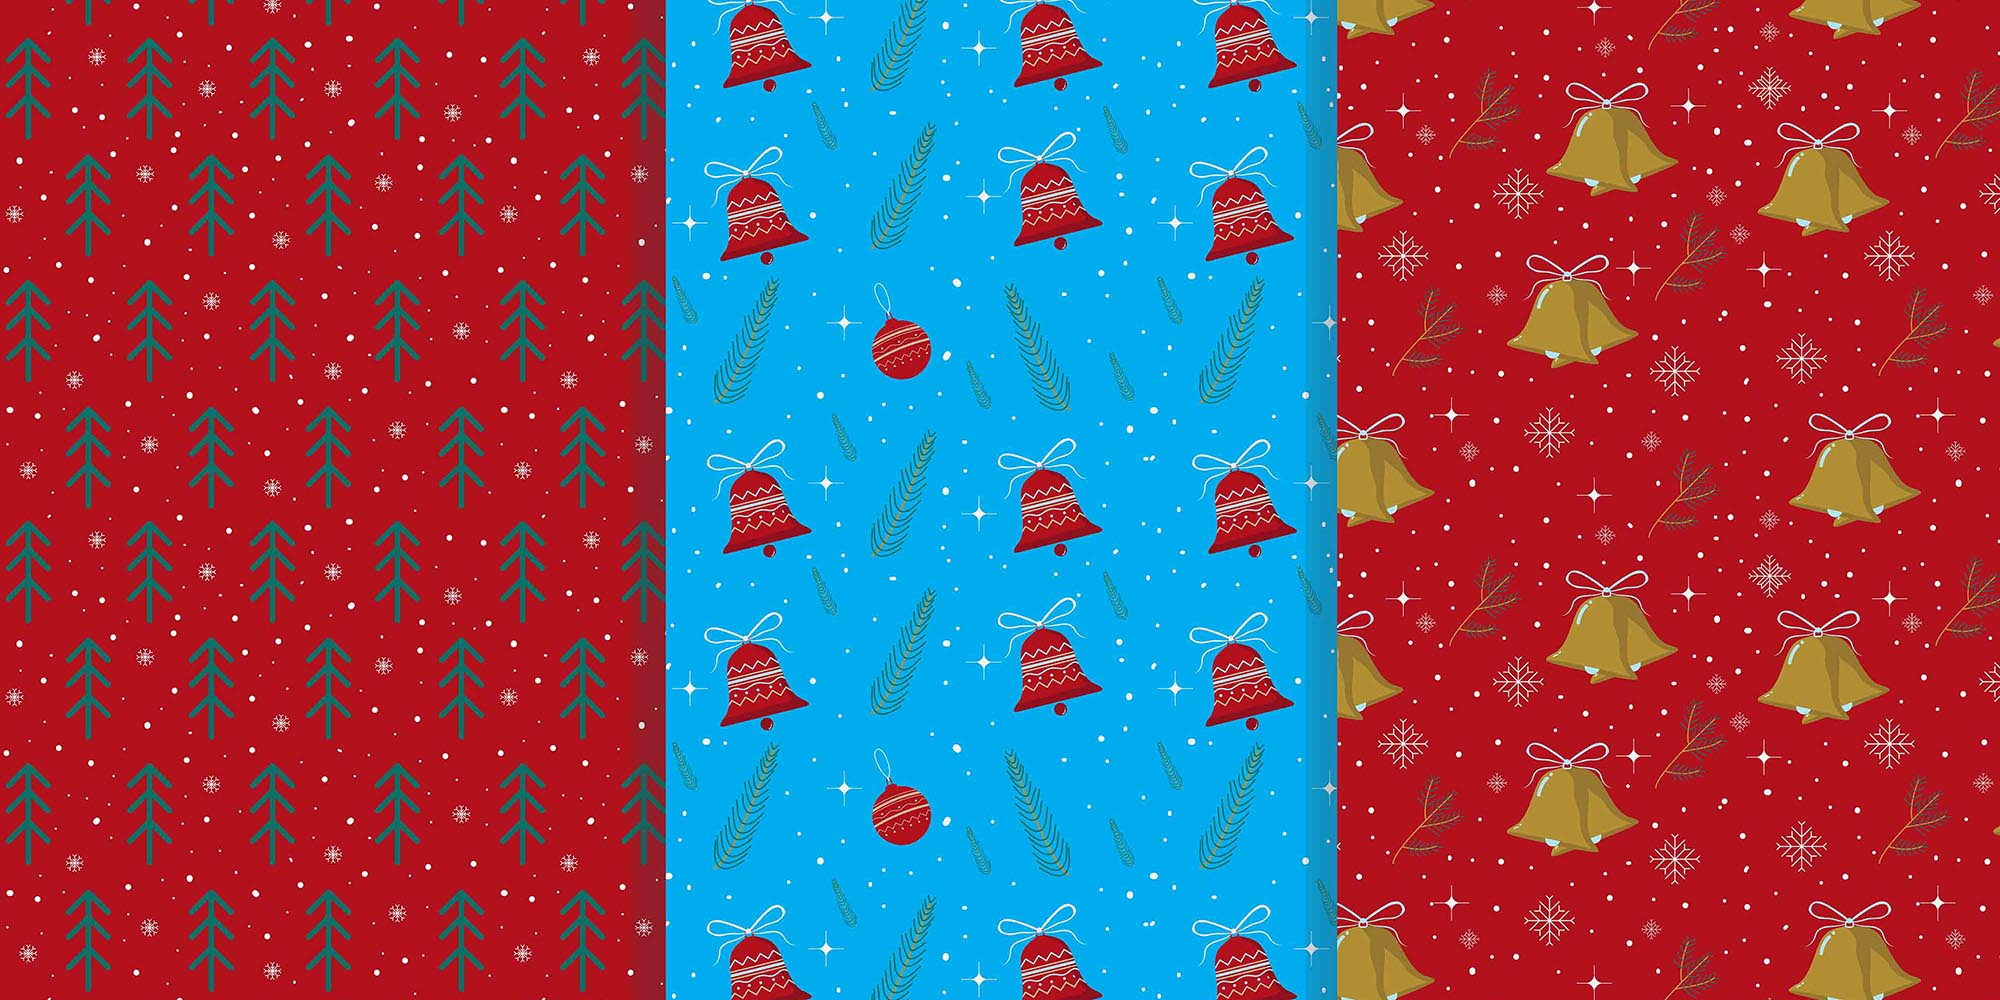 9 Christmas Patterns Vector Art .EPS - christmas pattern 2